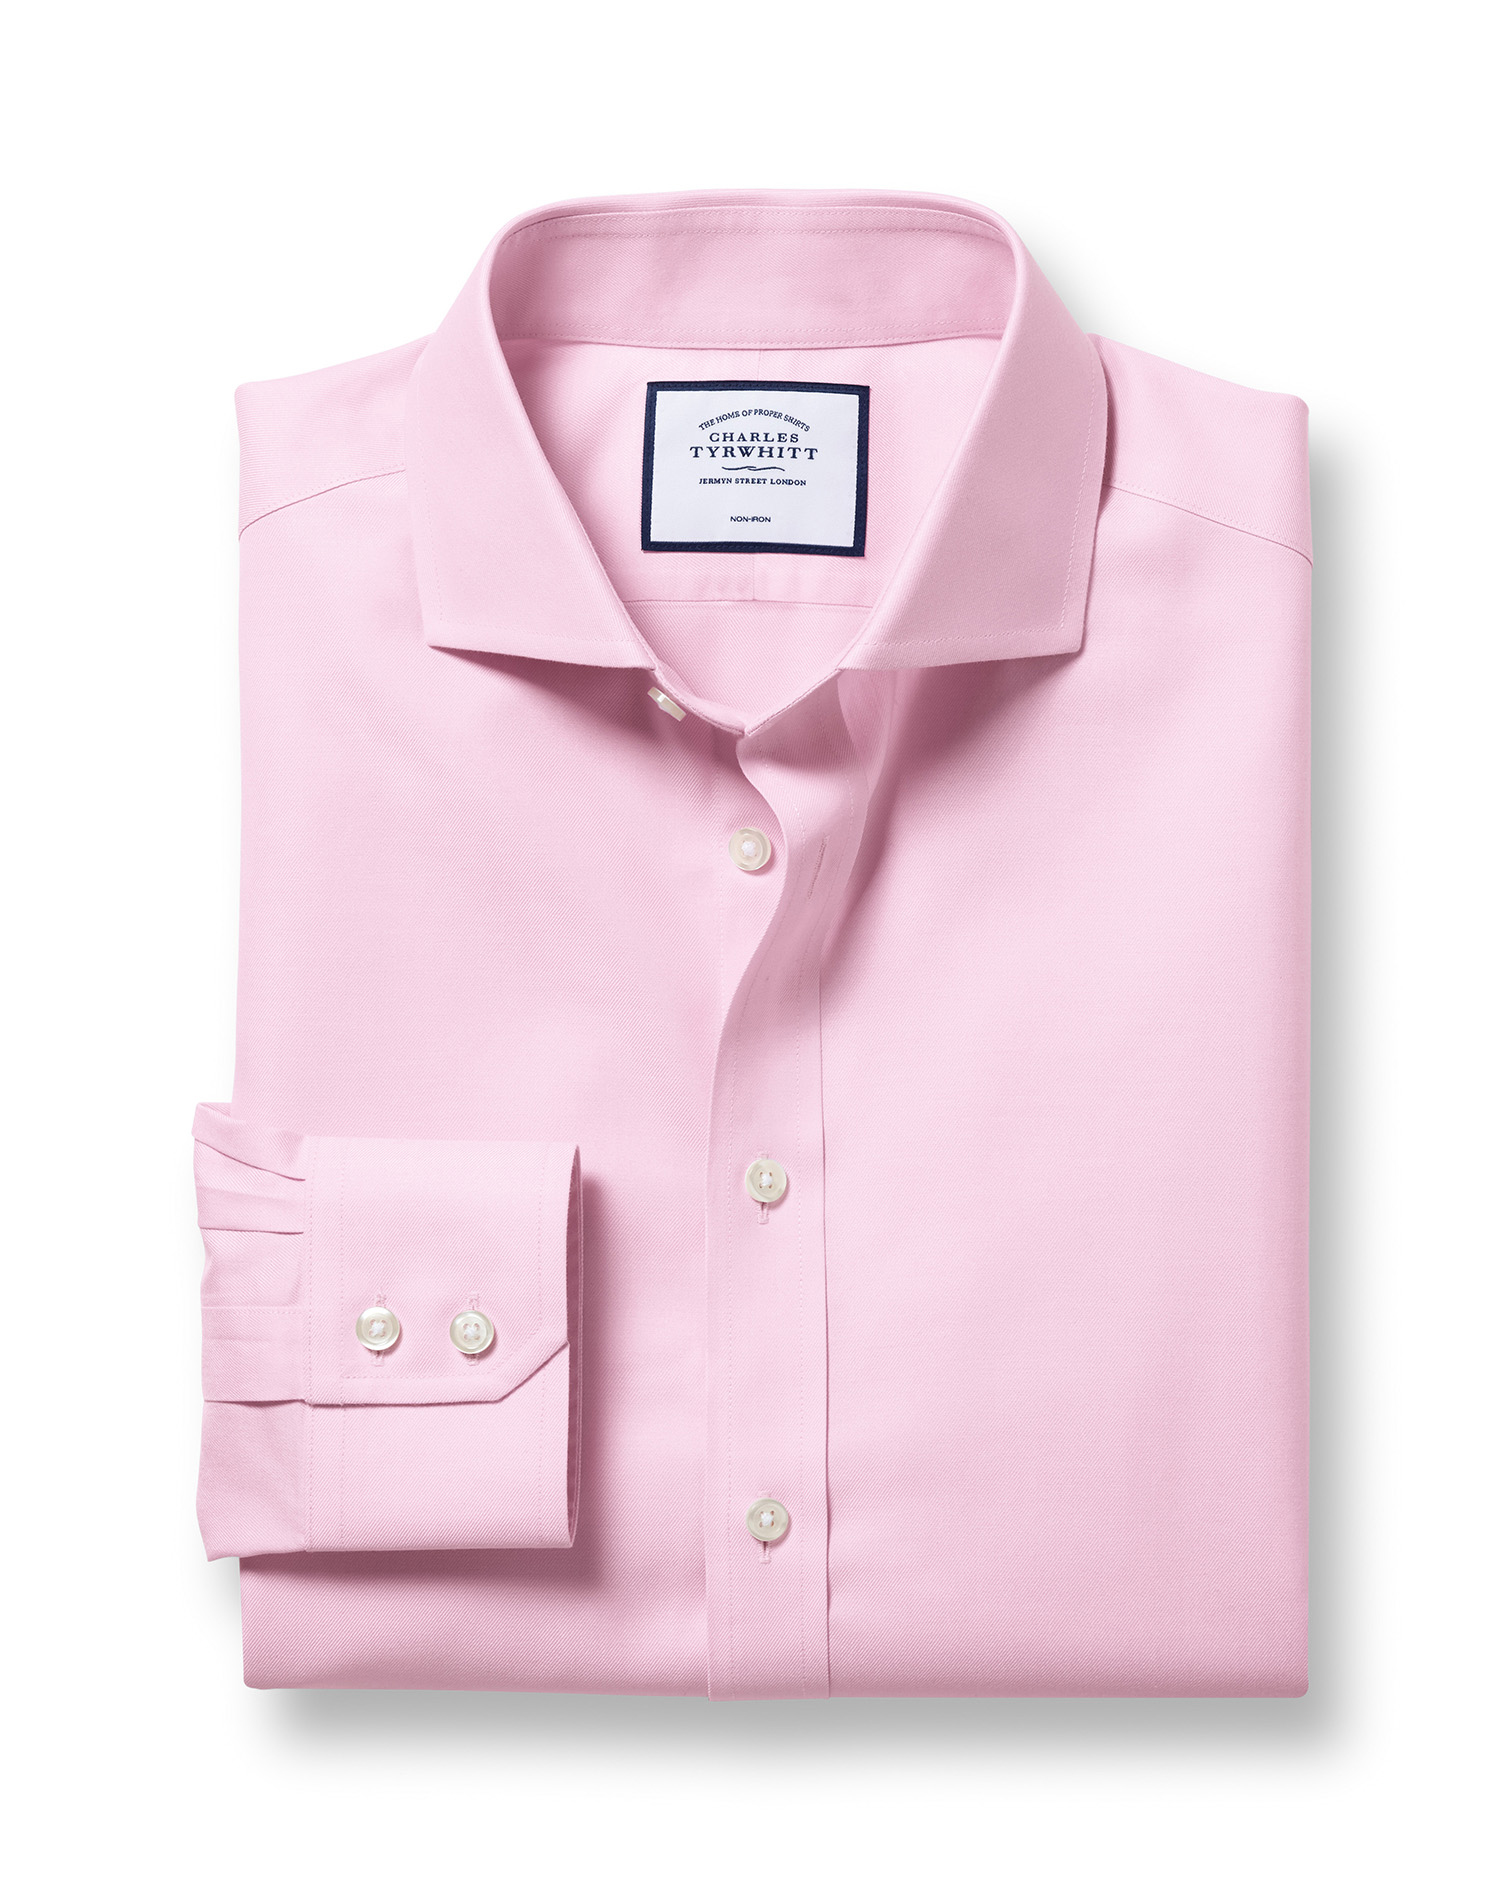 Slim Fit Cutaway Non-Iron Twill Pink Cotton Formal Shirt Single Cuff Size 16.5/38 by Charles Tyrwhit